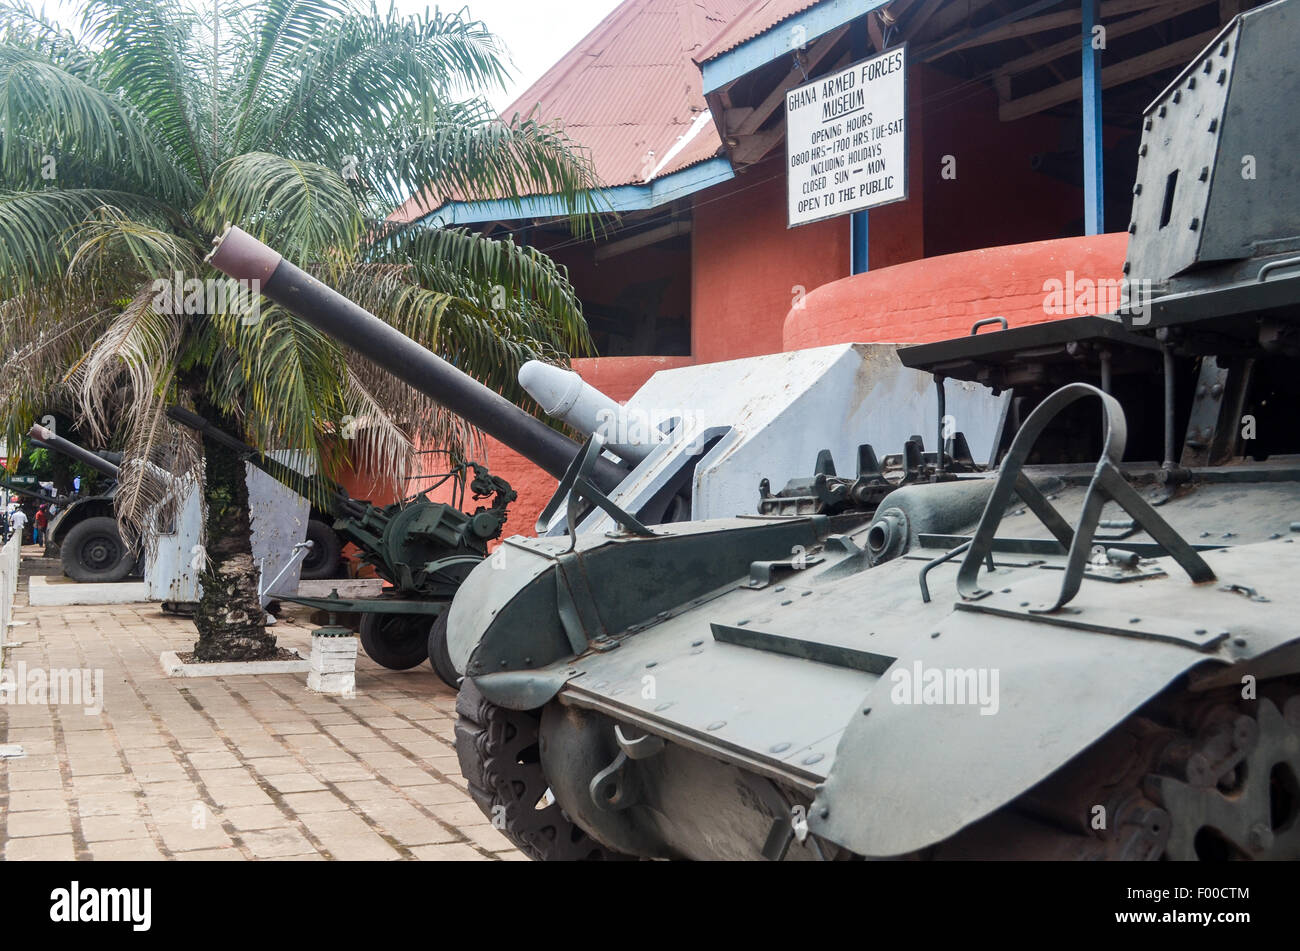 Tank at the entrance of the Armed Forces museum of Kumasi, Ghana - Stock Image